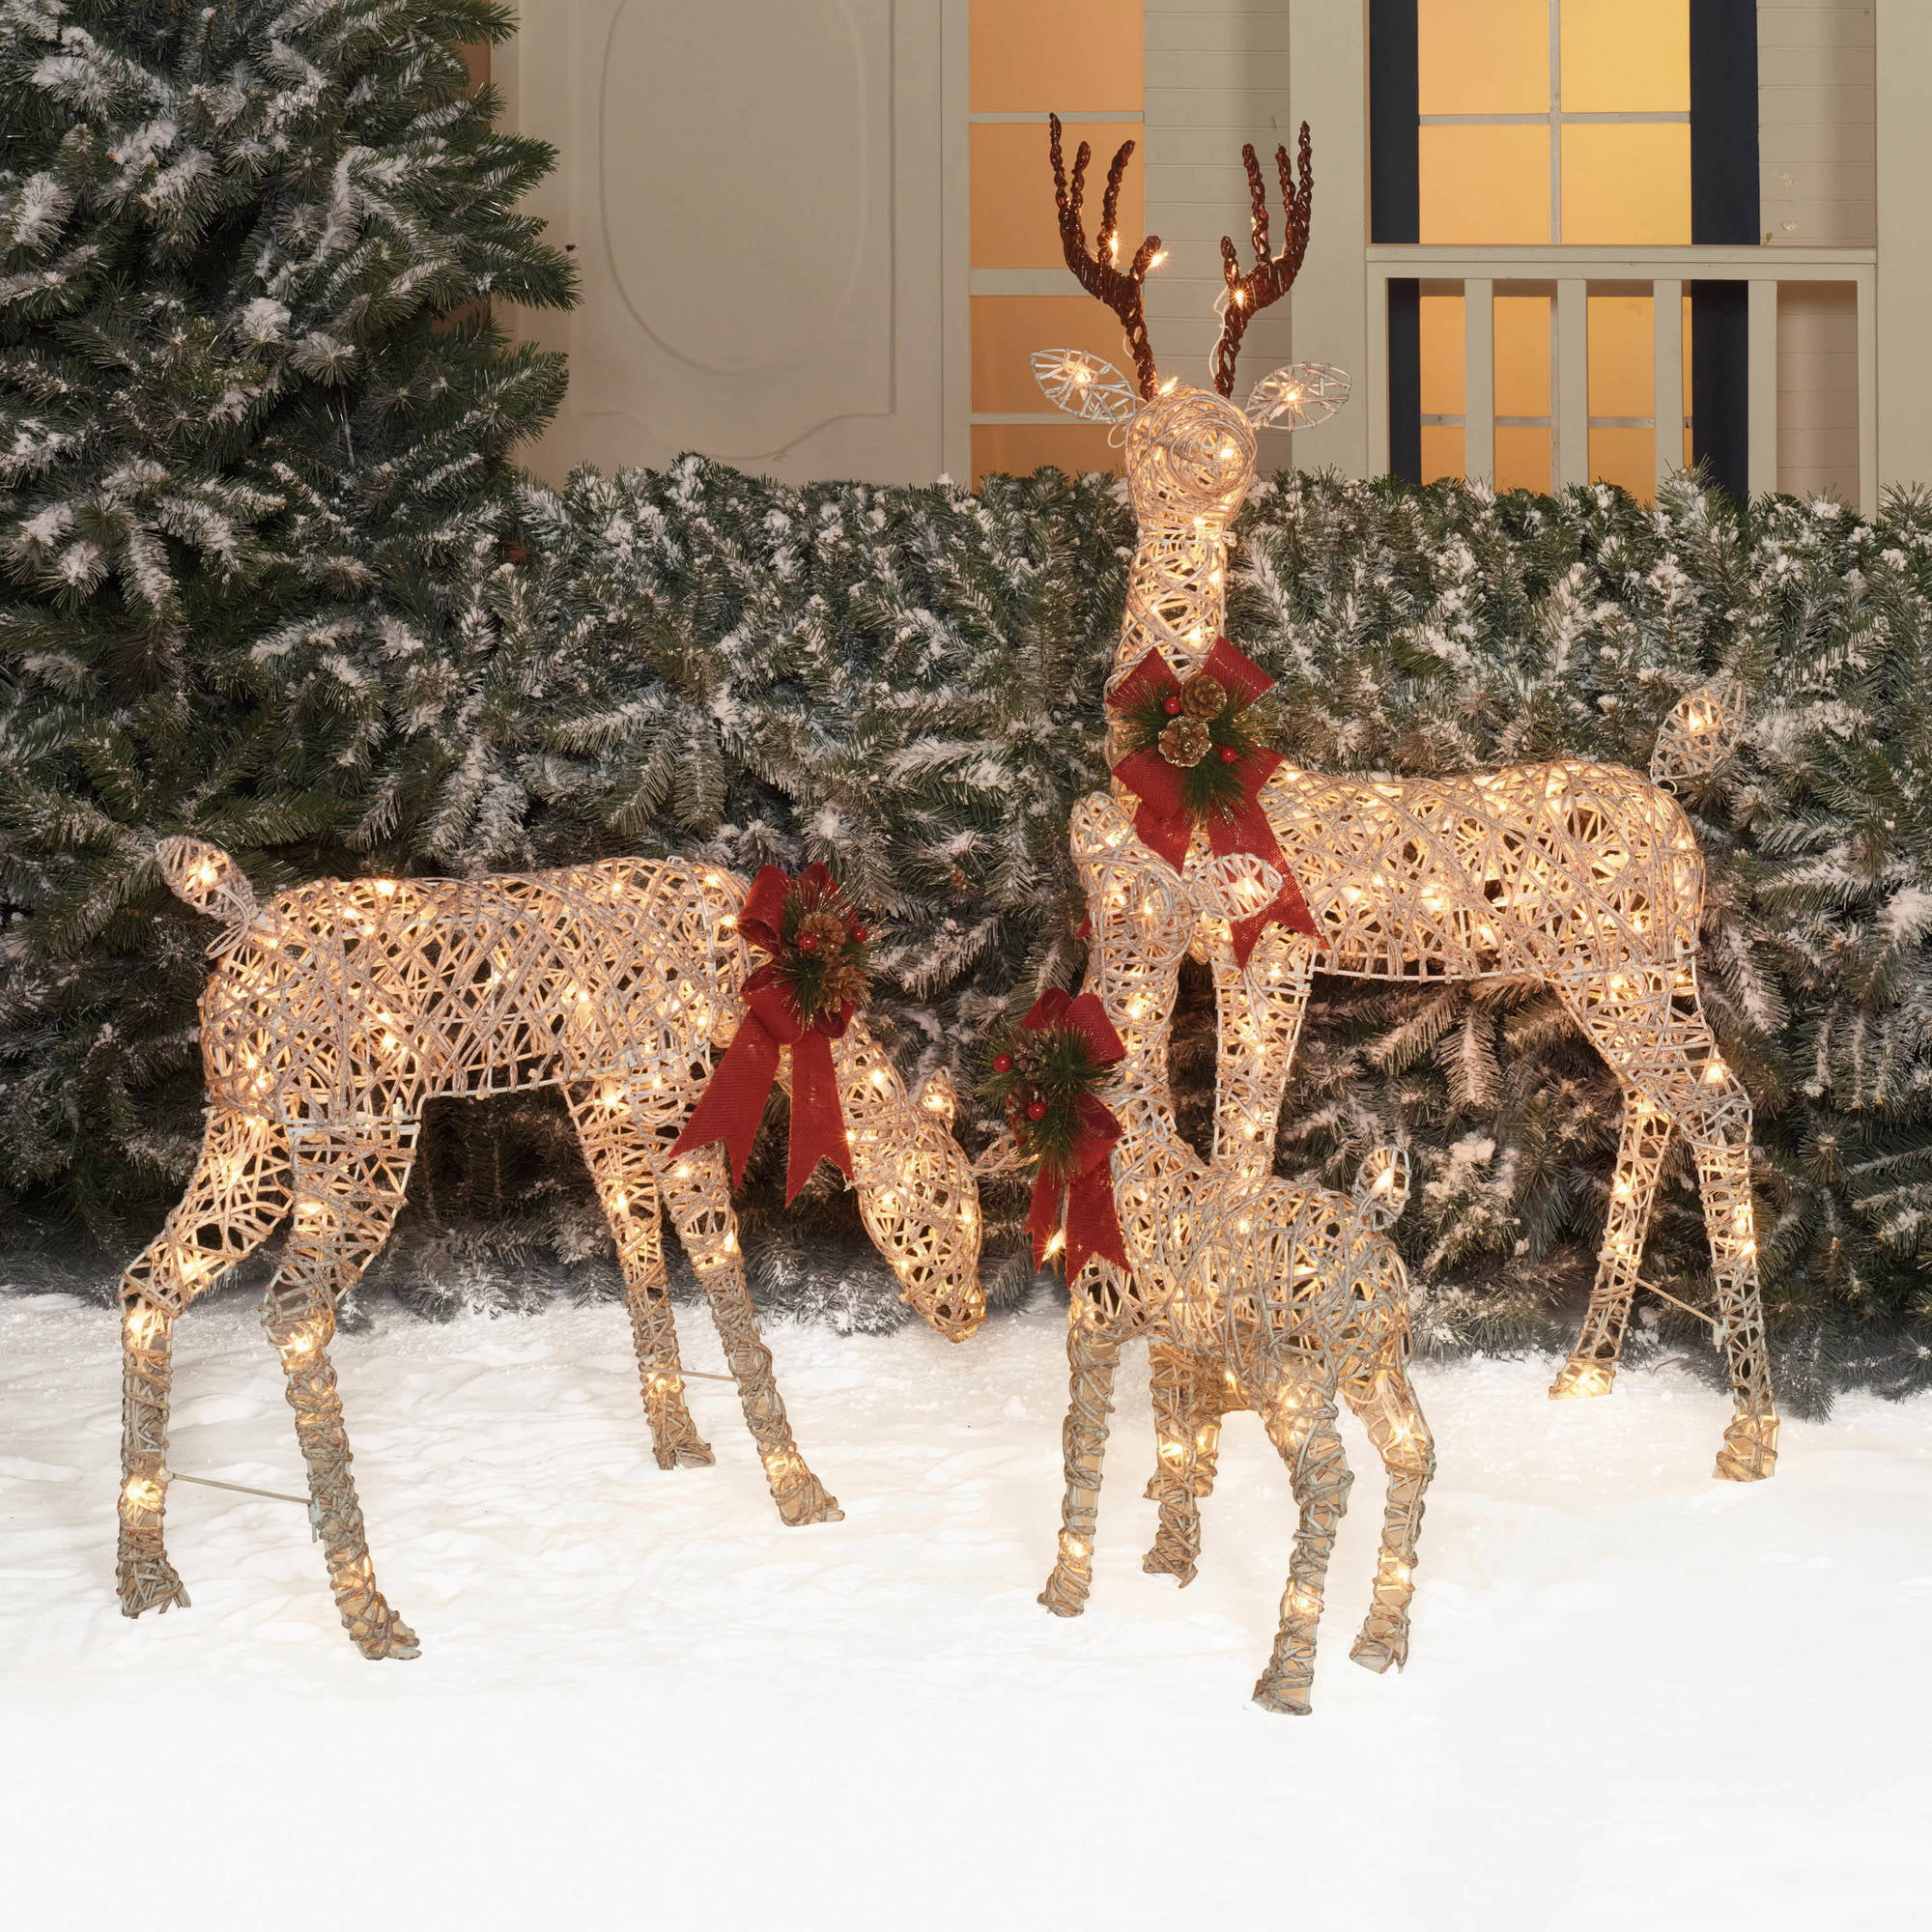 holiday time christmas decor set of 3 woodland vine deer family sculpture walmartcom - Christmas Deer Decor